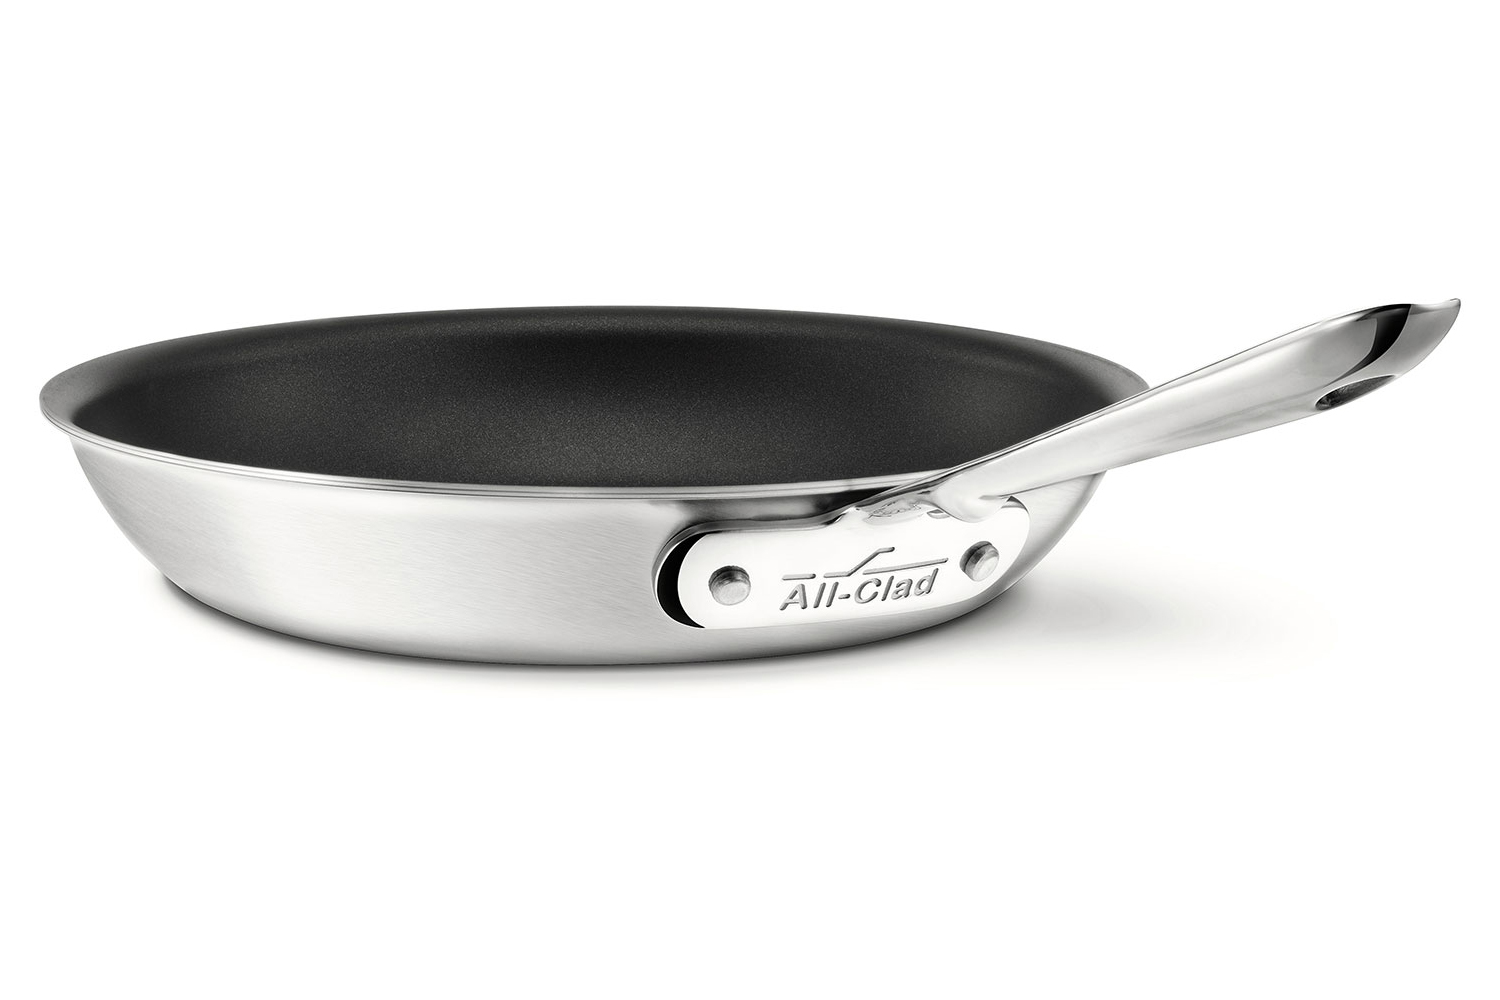 All Clad D5 Brushed Stainless 10in Nonstick Frying Pan